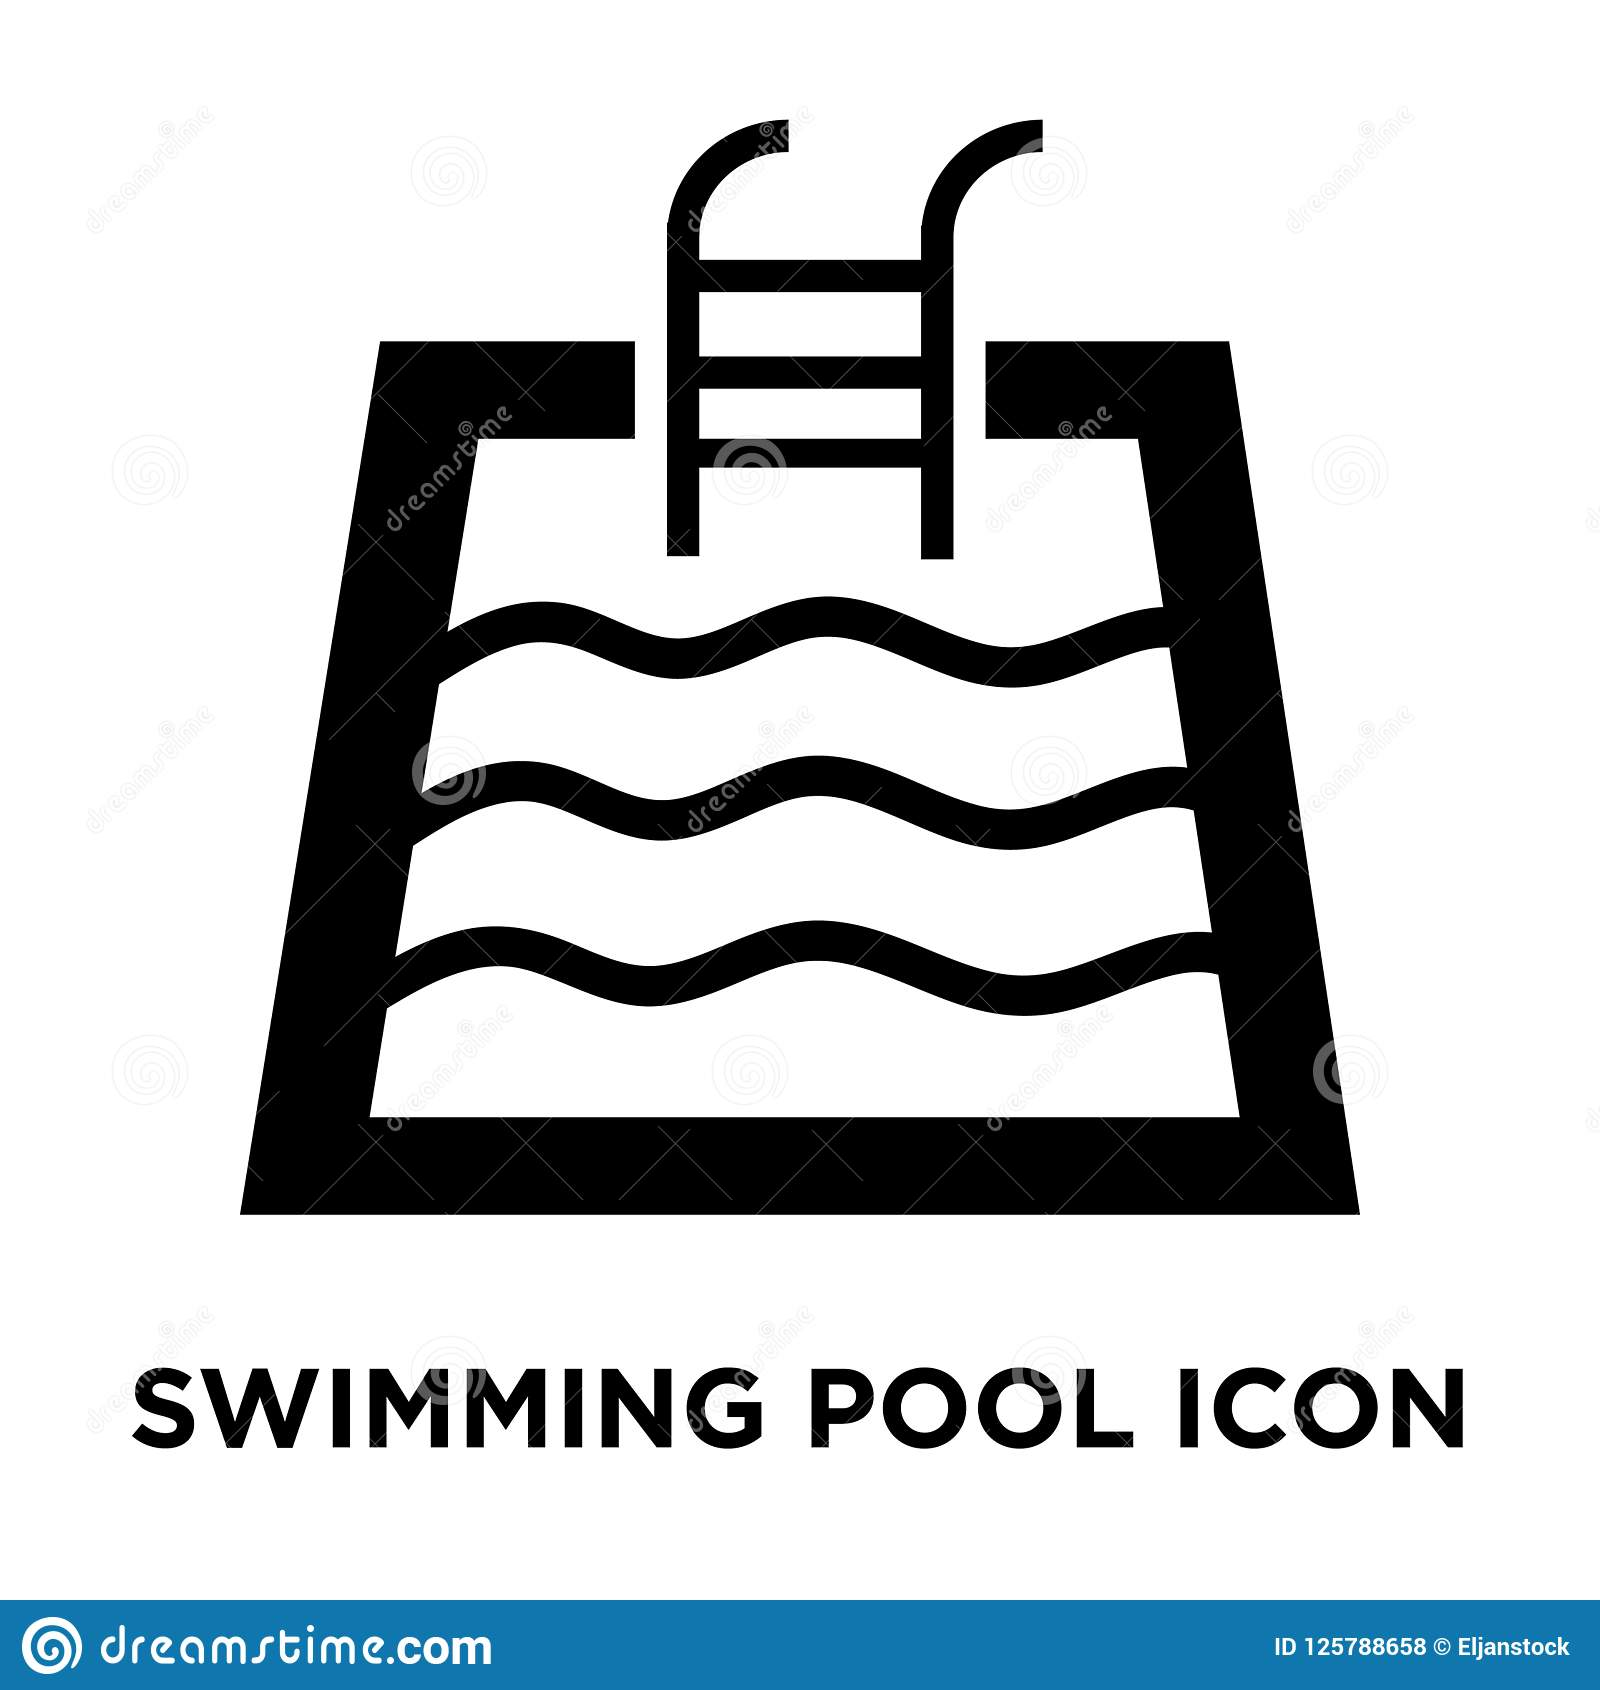 swimming pool icon vector isolated on white background, logo con stock  vector - illustration of sport, healthy: 125788658  dreamstime.com